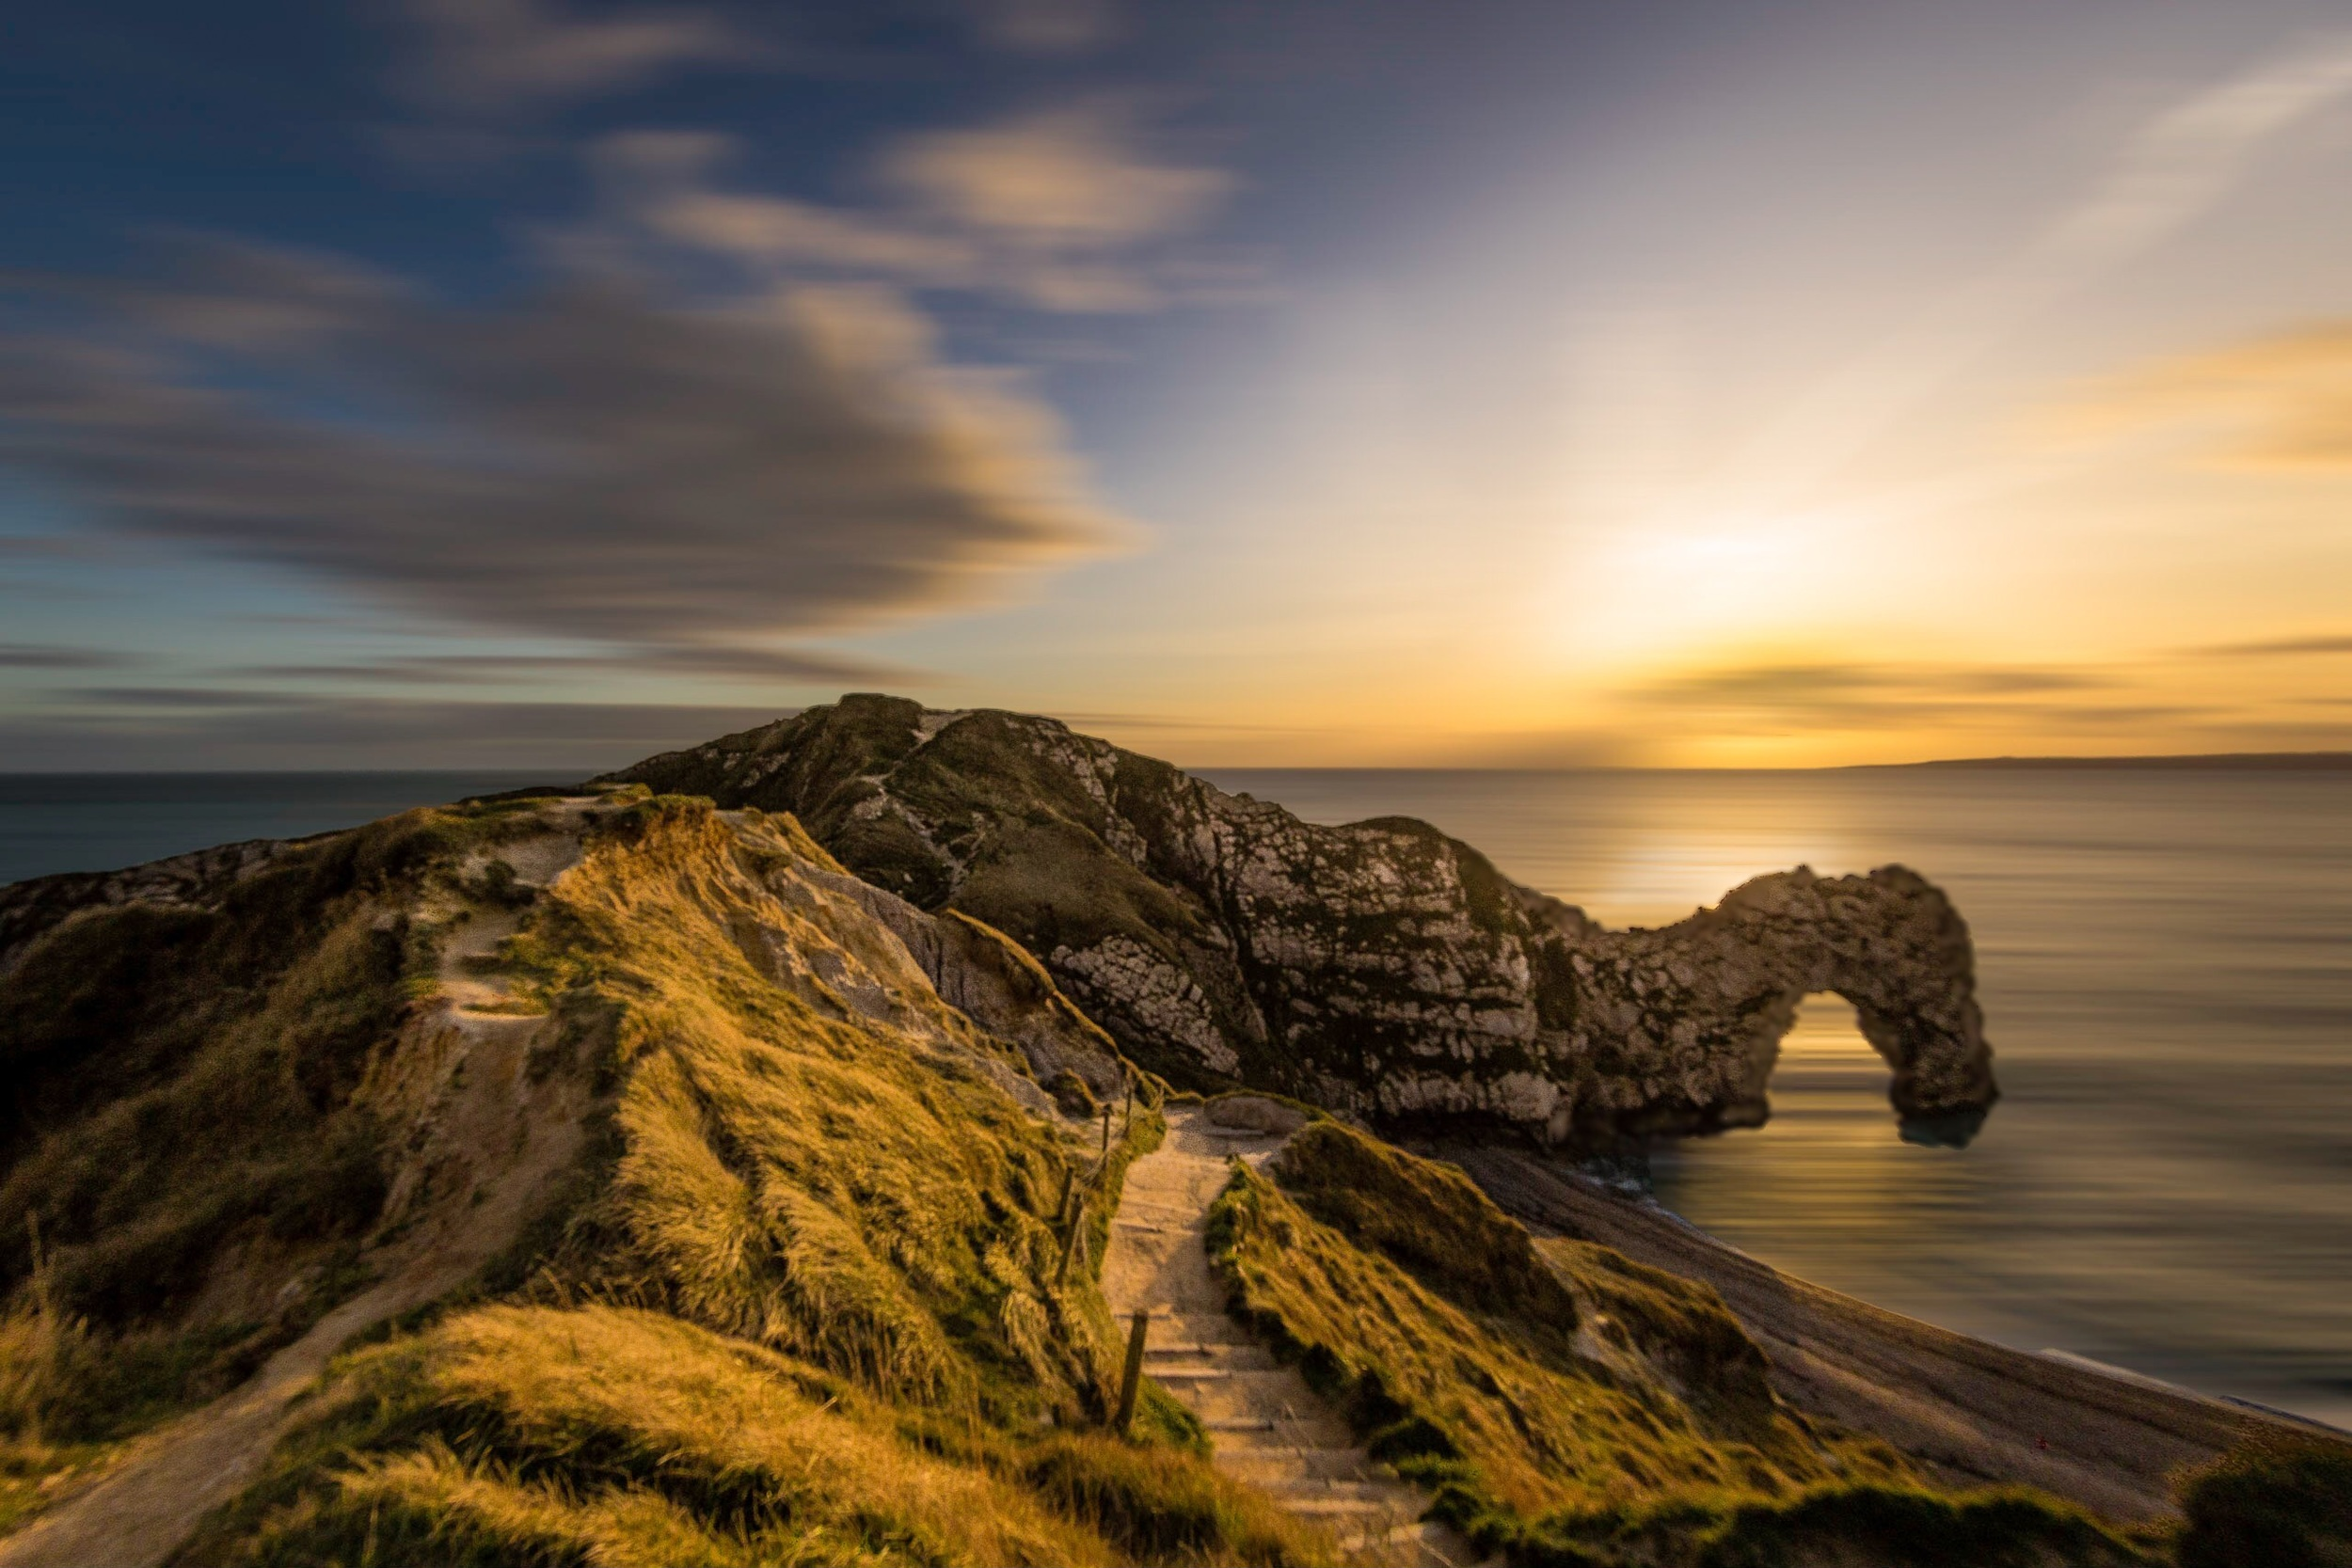 Durdle Door  This really is a world famous landmark, photographed one cold winters evening when there was absolutely no-one there but me. A great subject, a great sky, still clouds and moving water all combine to produce this slightly different picture of Durdle Door.